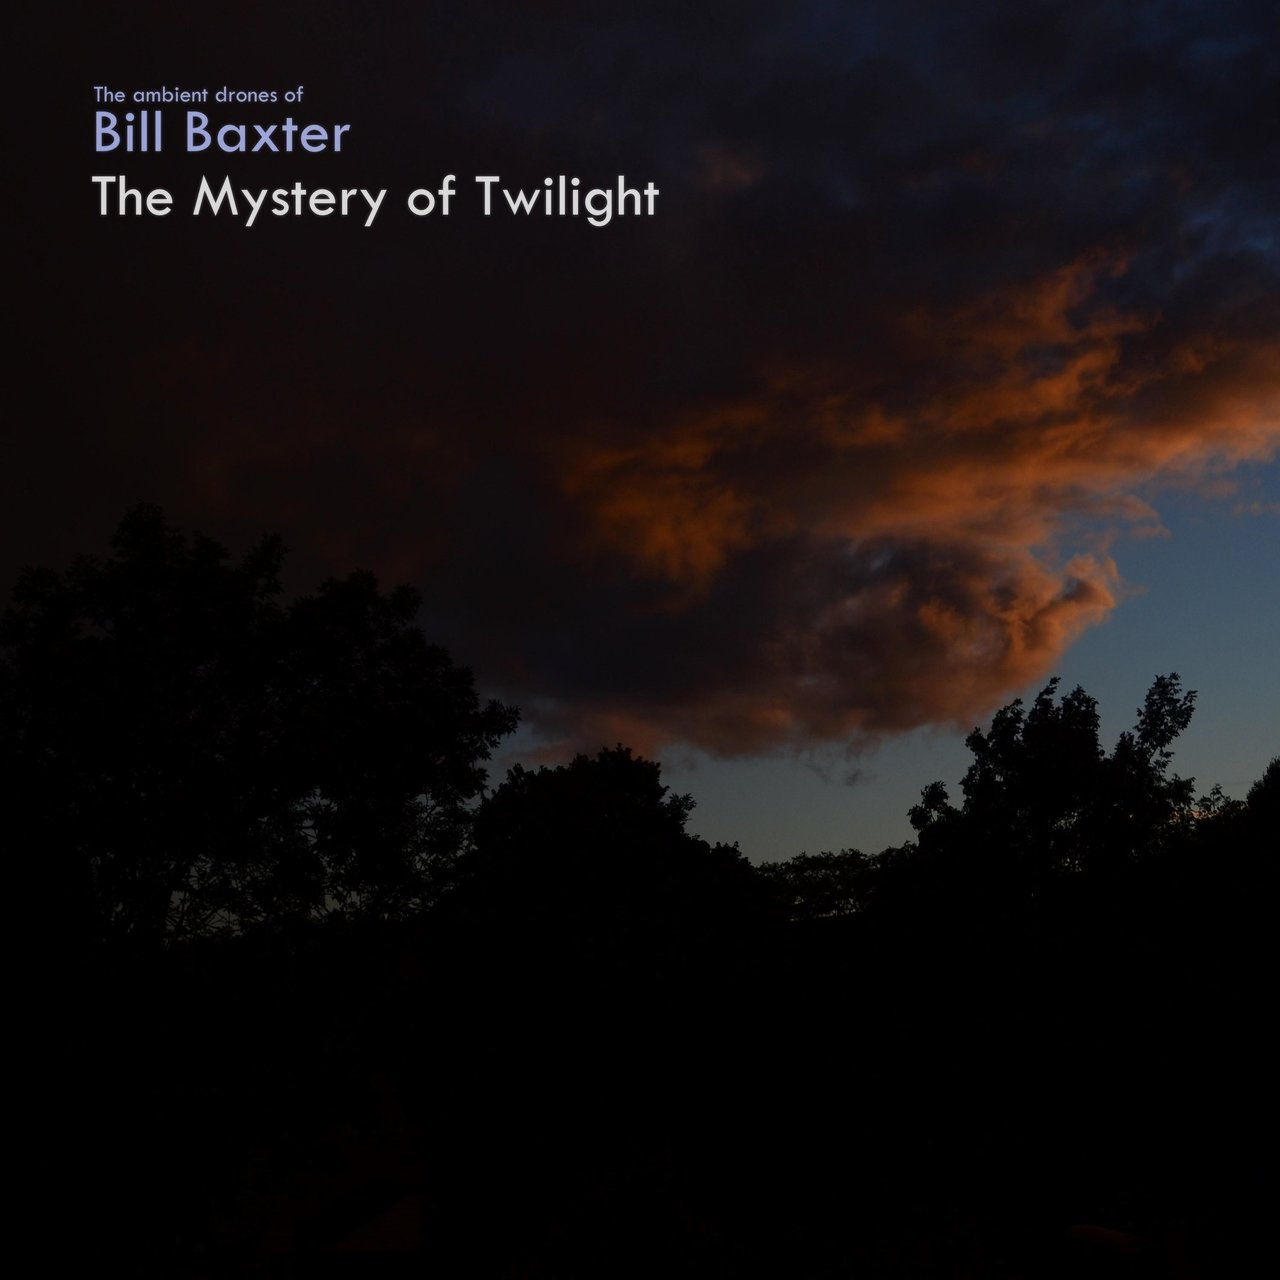 The Mystery of Twilight